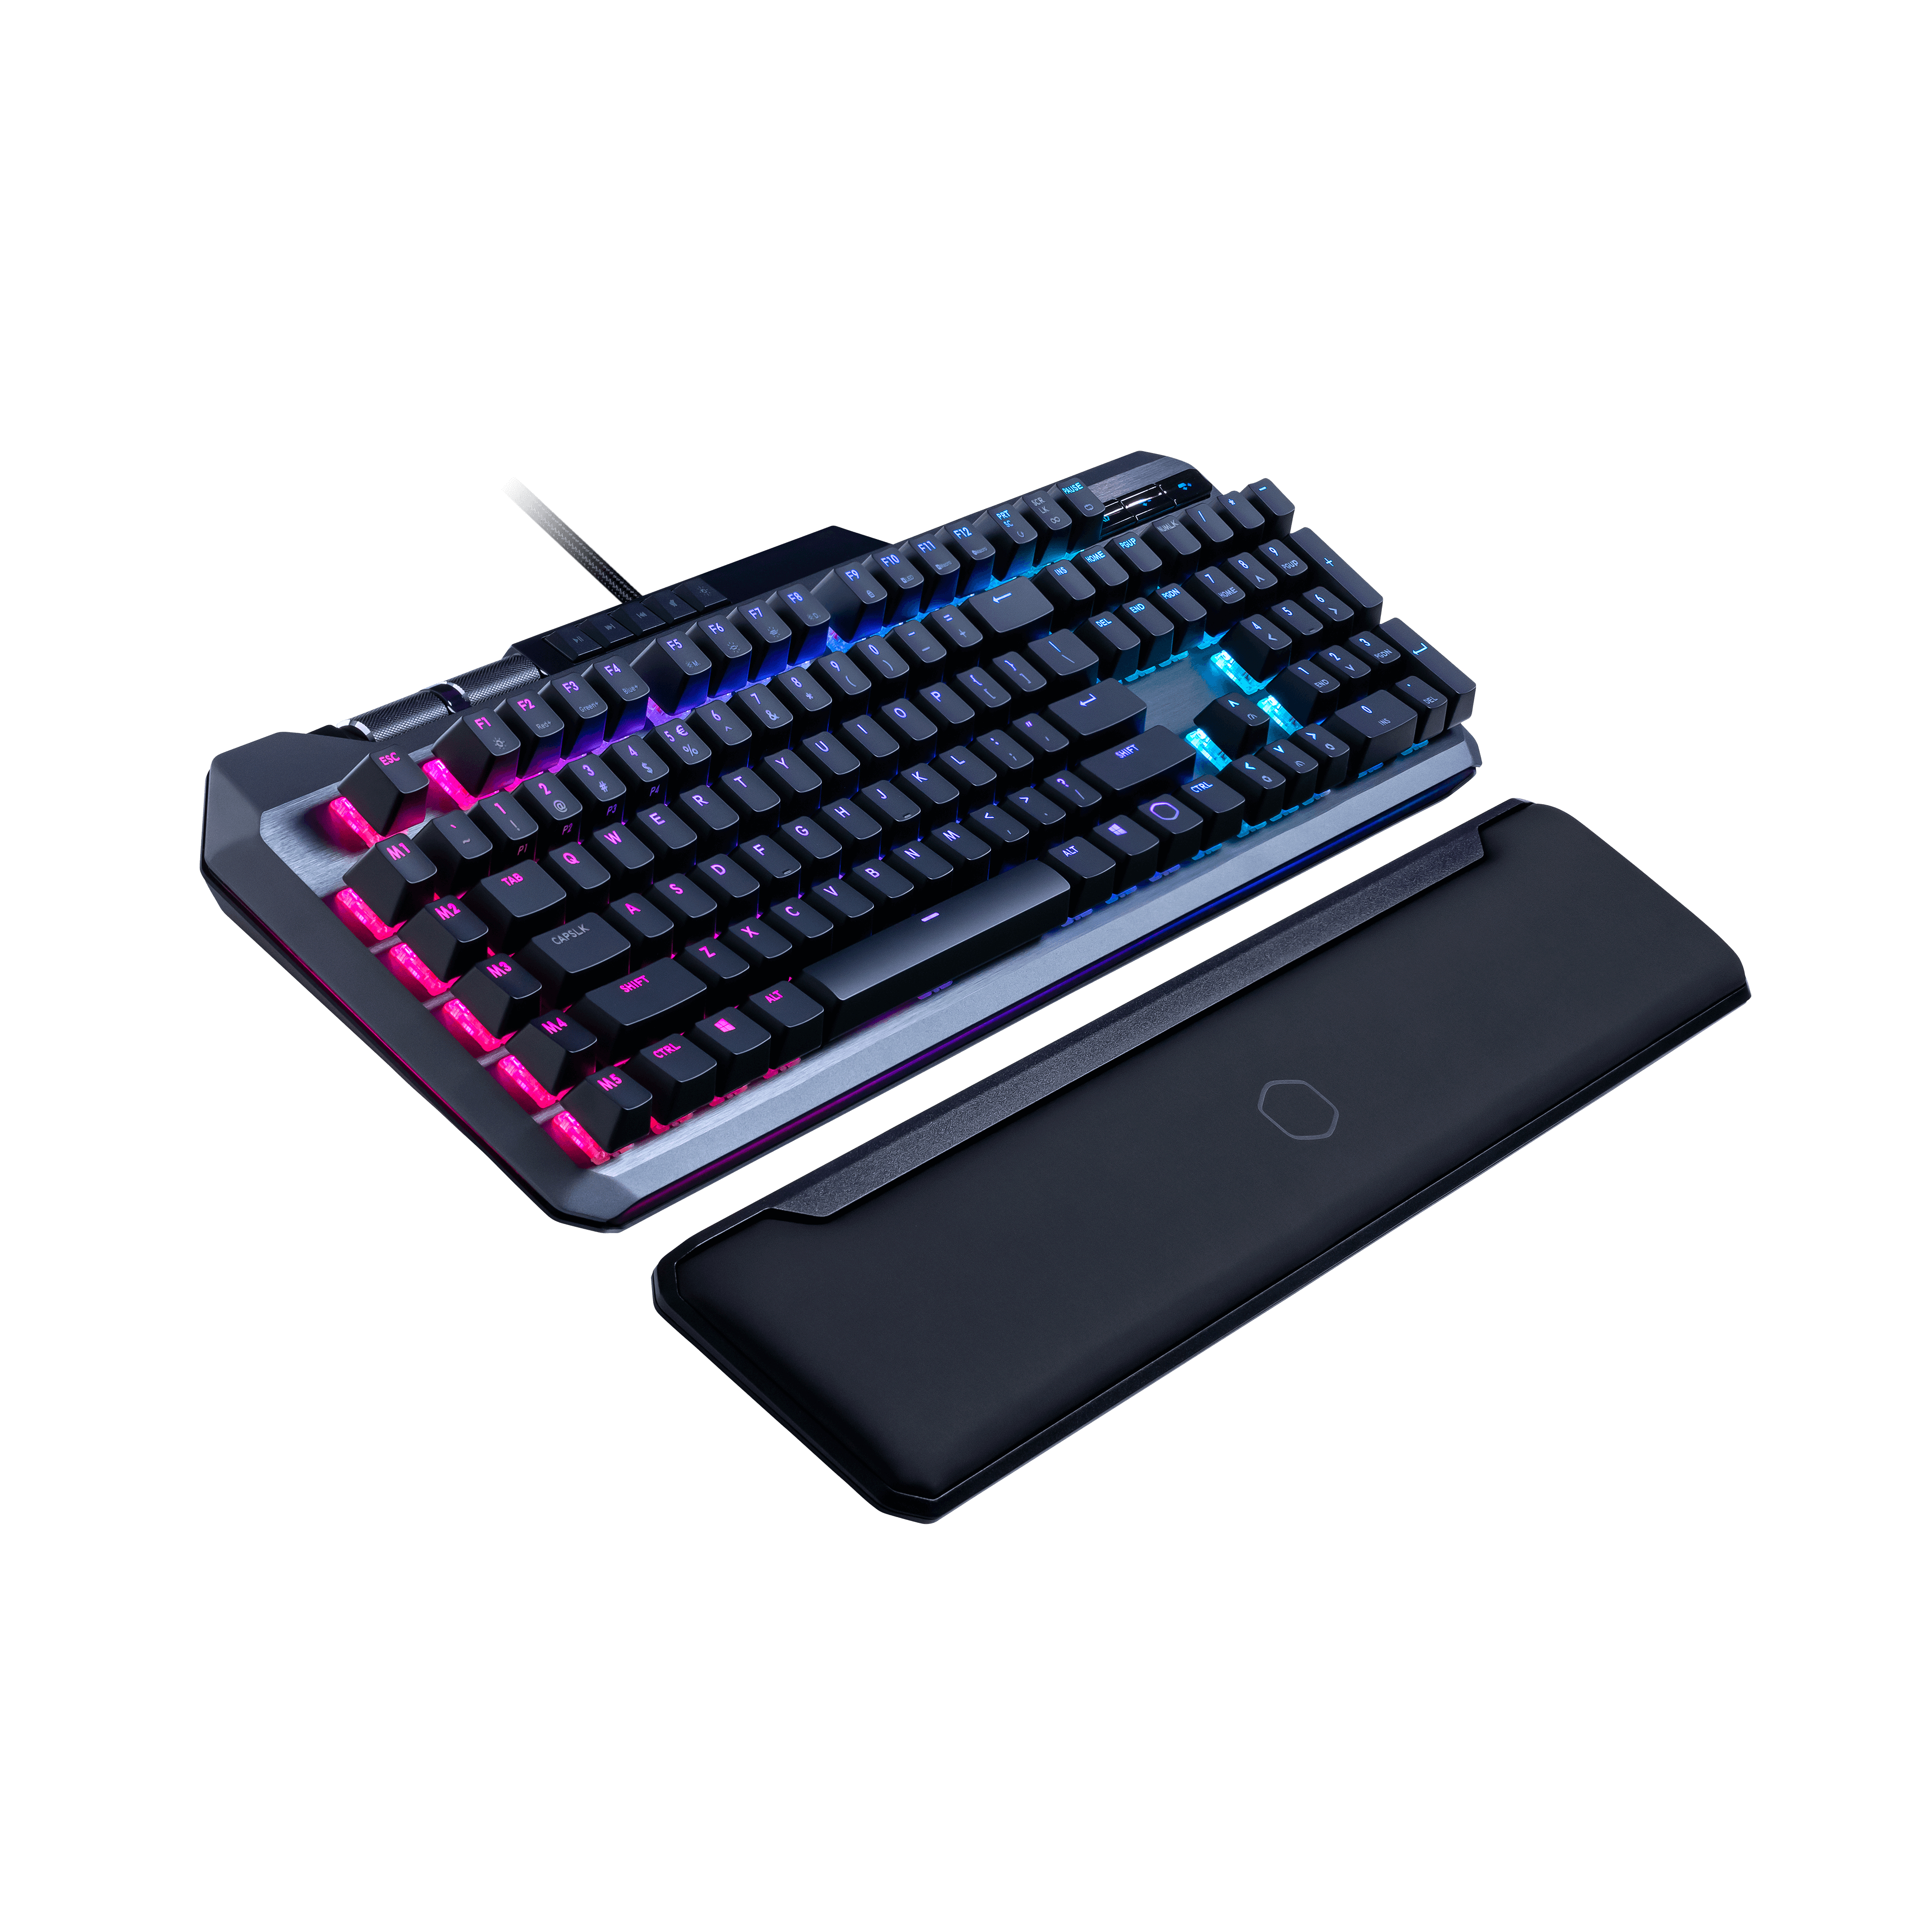 Cooler Master CK-850 Black Gaming Keyboard